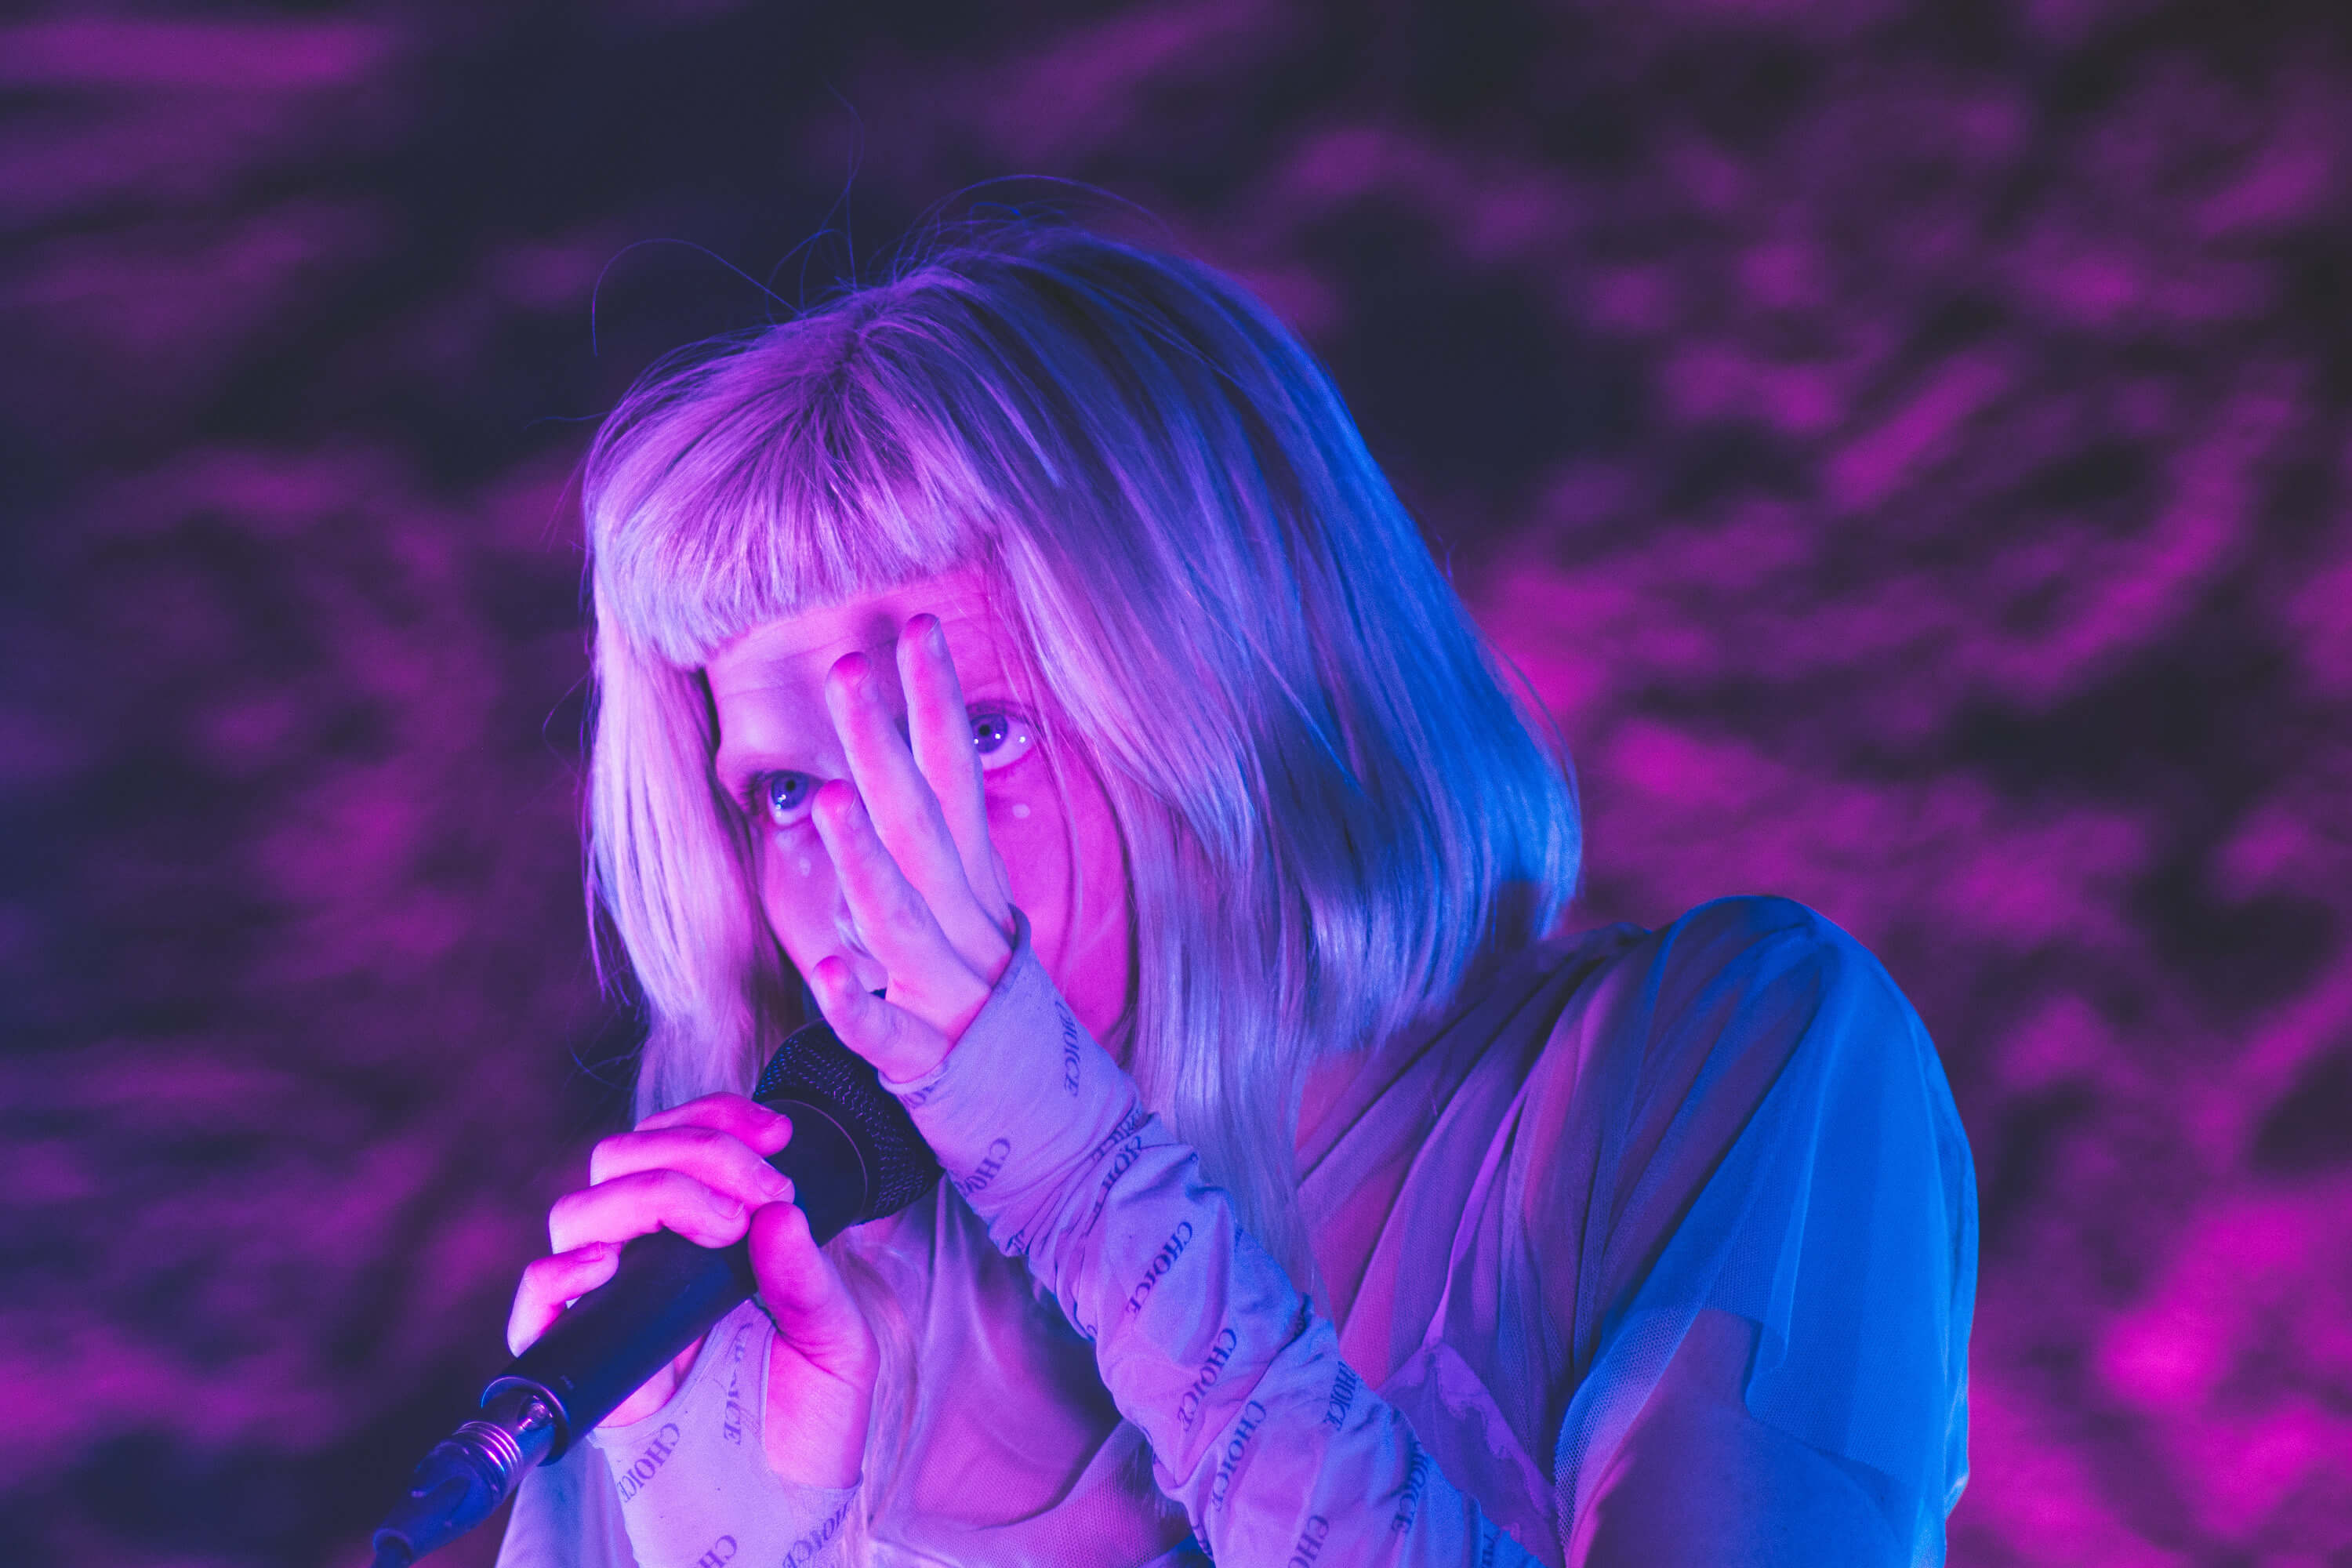 Aurora no Pitchfork Paris